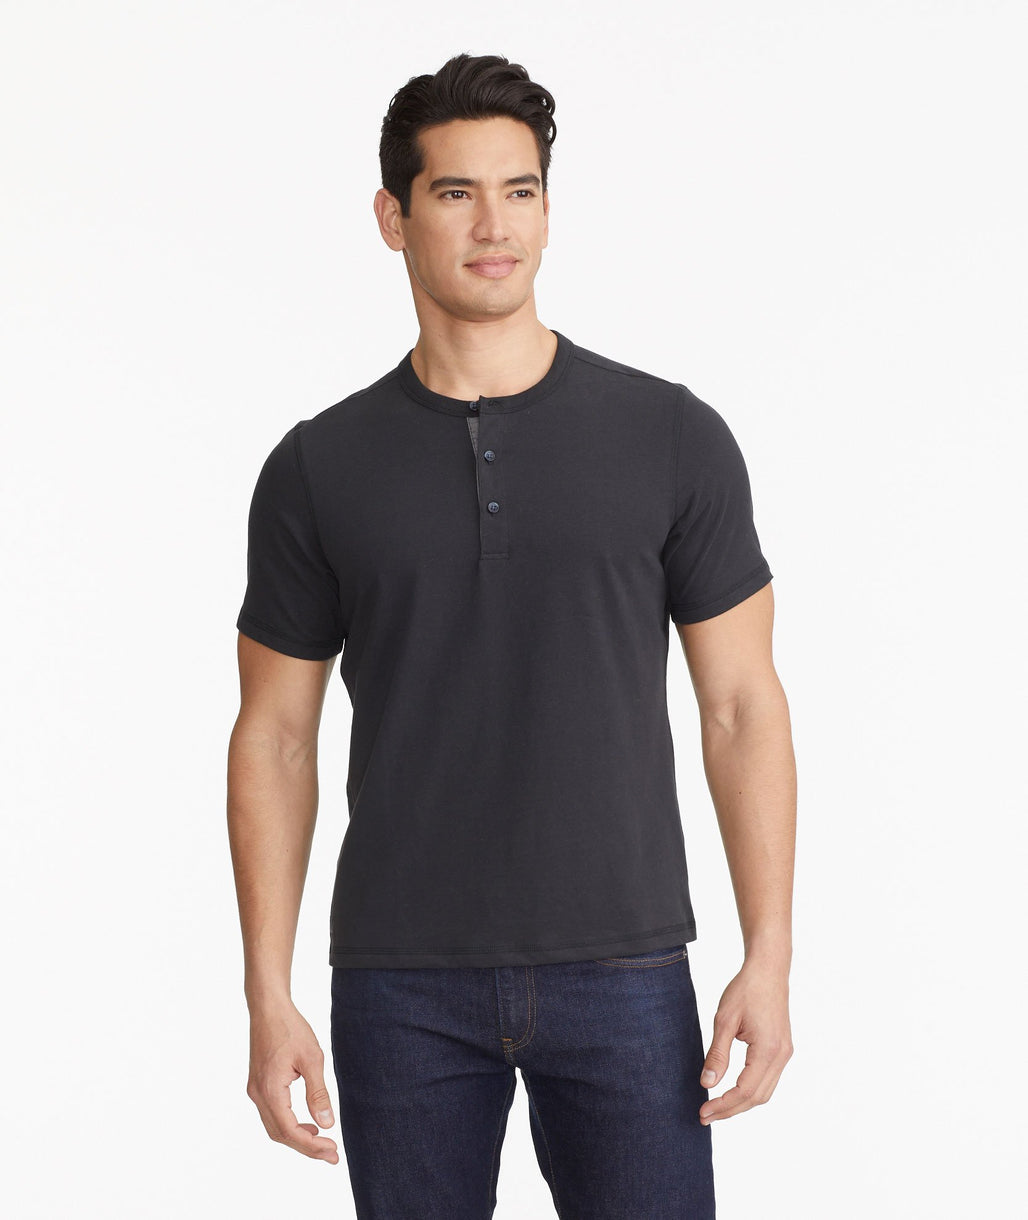 Model wearing a Black The Ultrasoft Short-Sleeve Henley